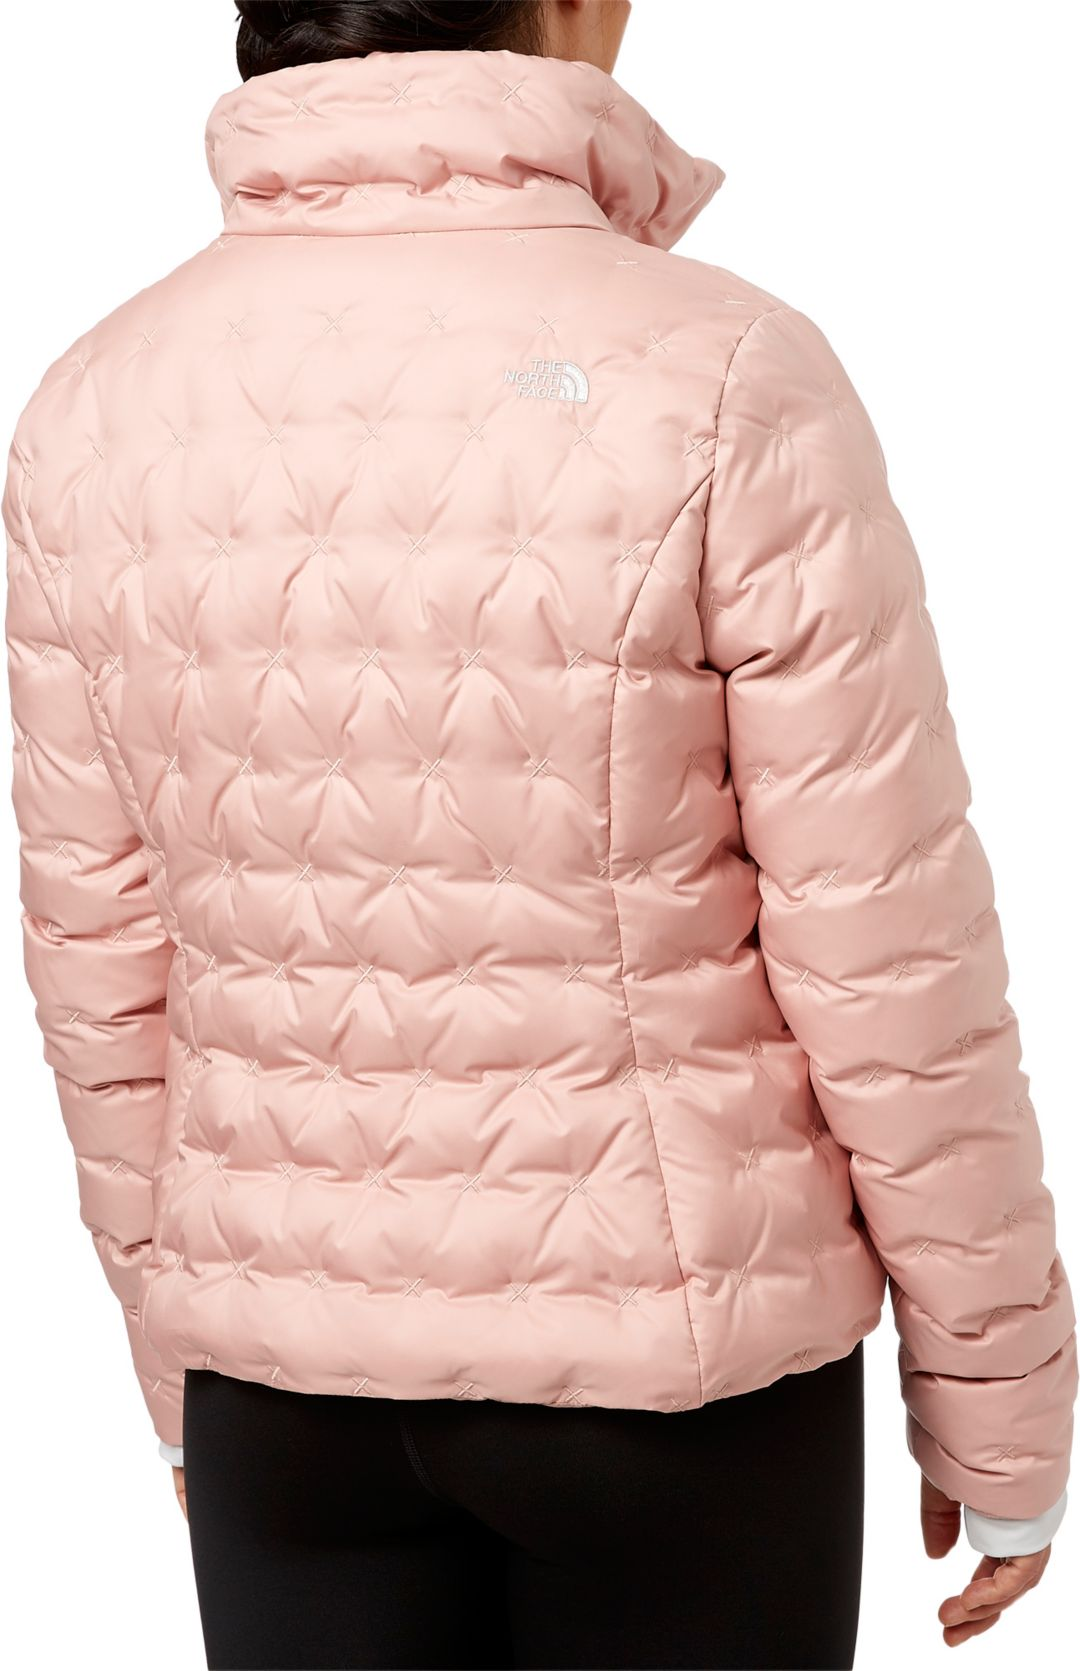 789257c24 The North Face Women's Holladown Crop Jacket